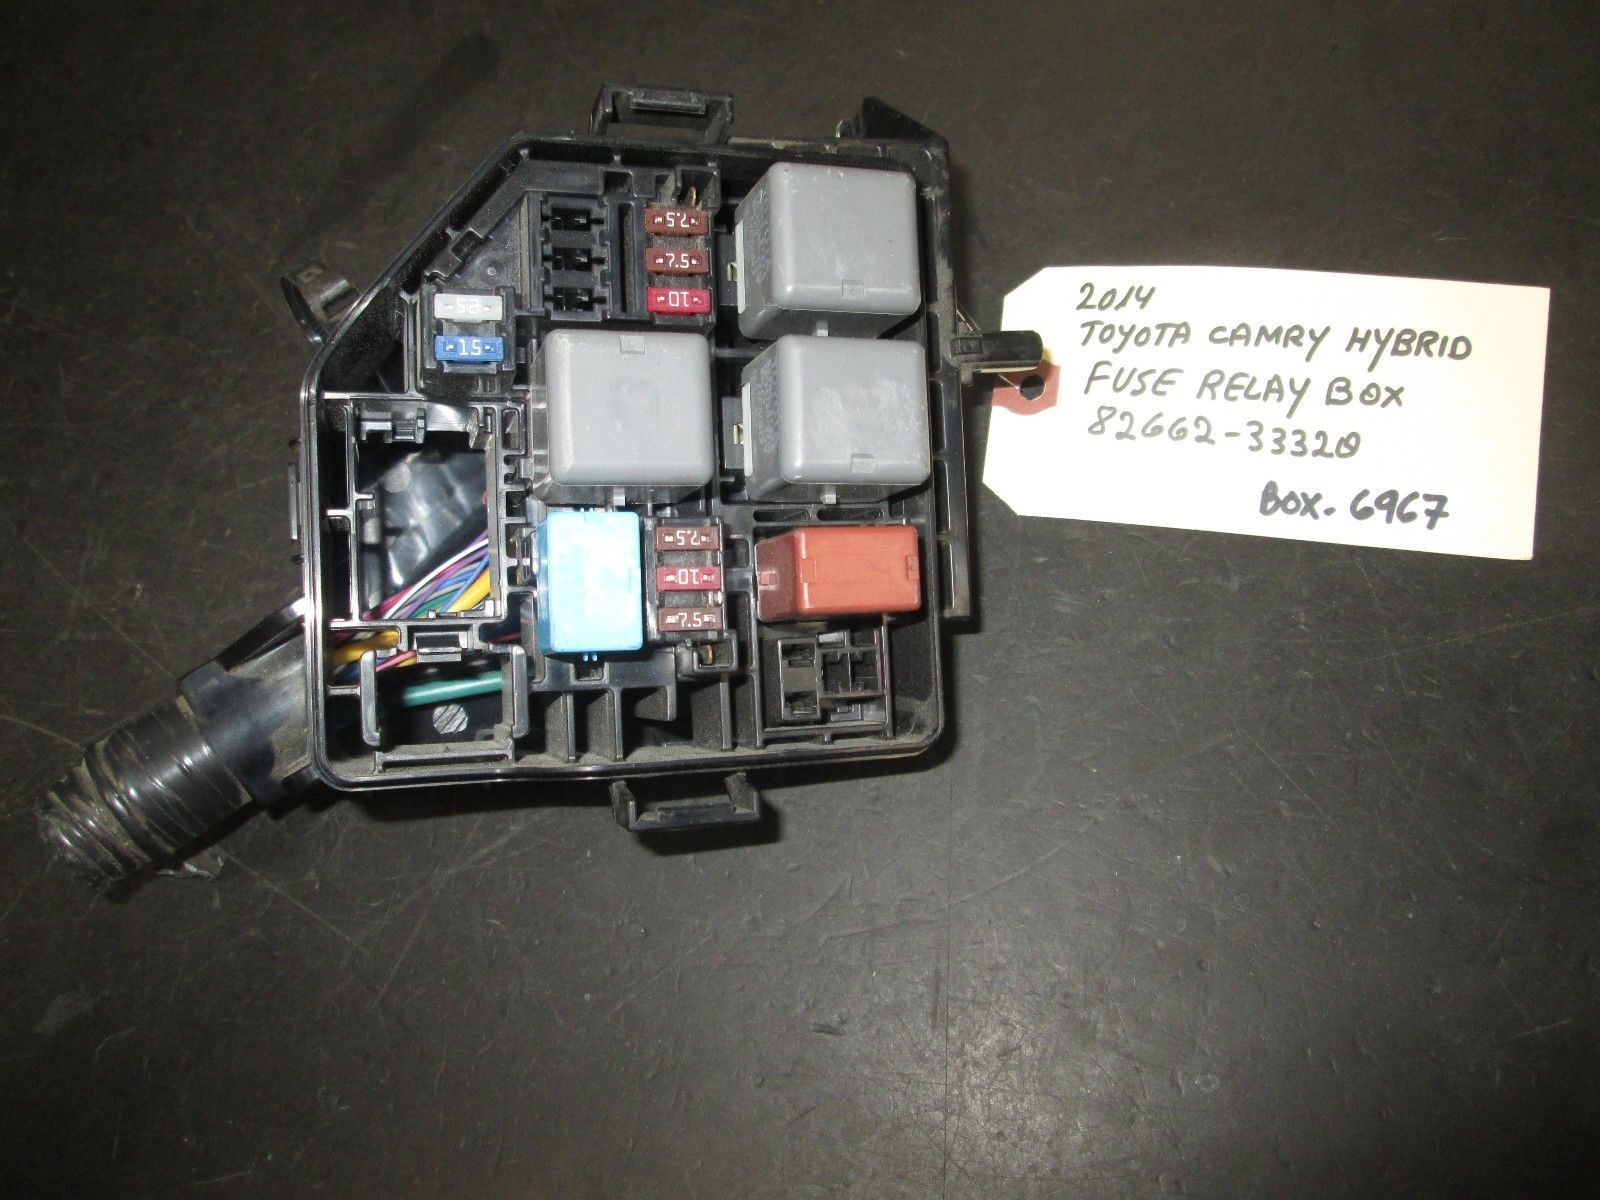 Primary image for 14 TOYOTA CAMRY HYBRID FUSE RELAY BOX #82662-33320